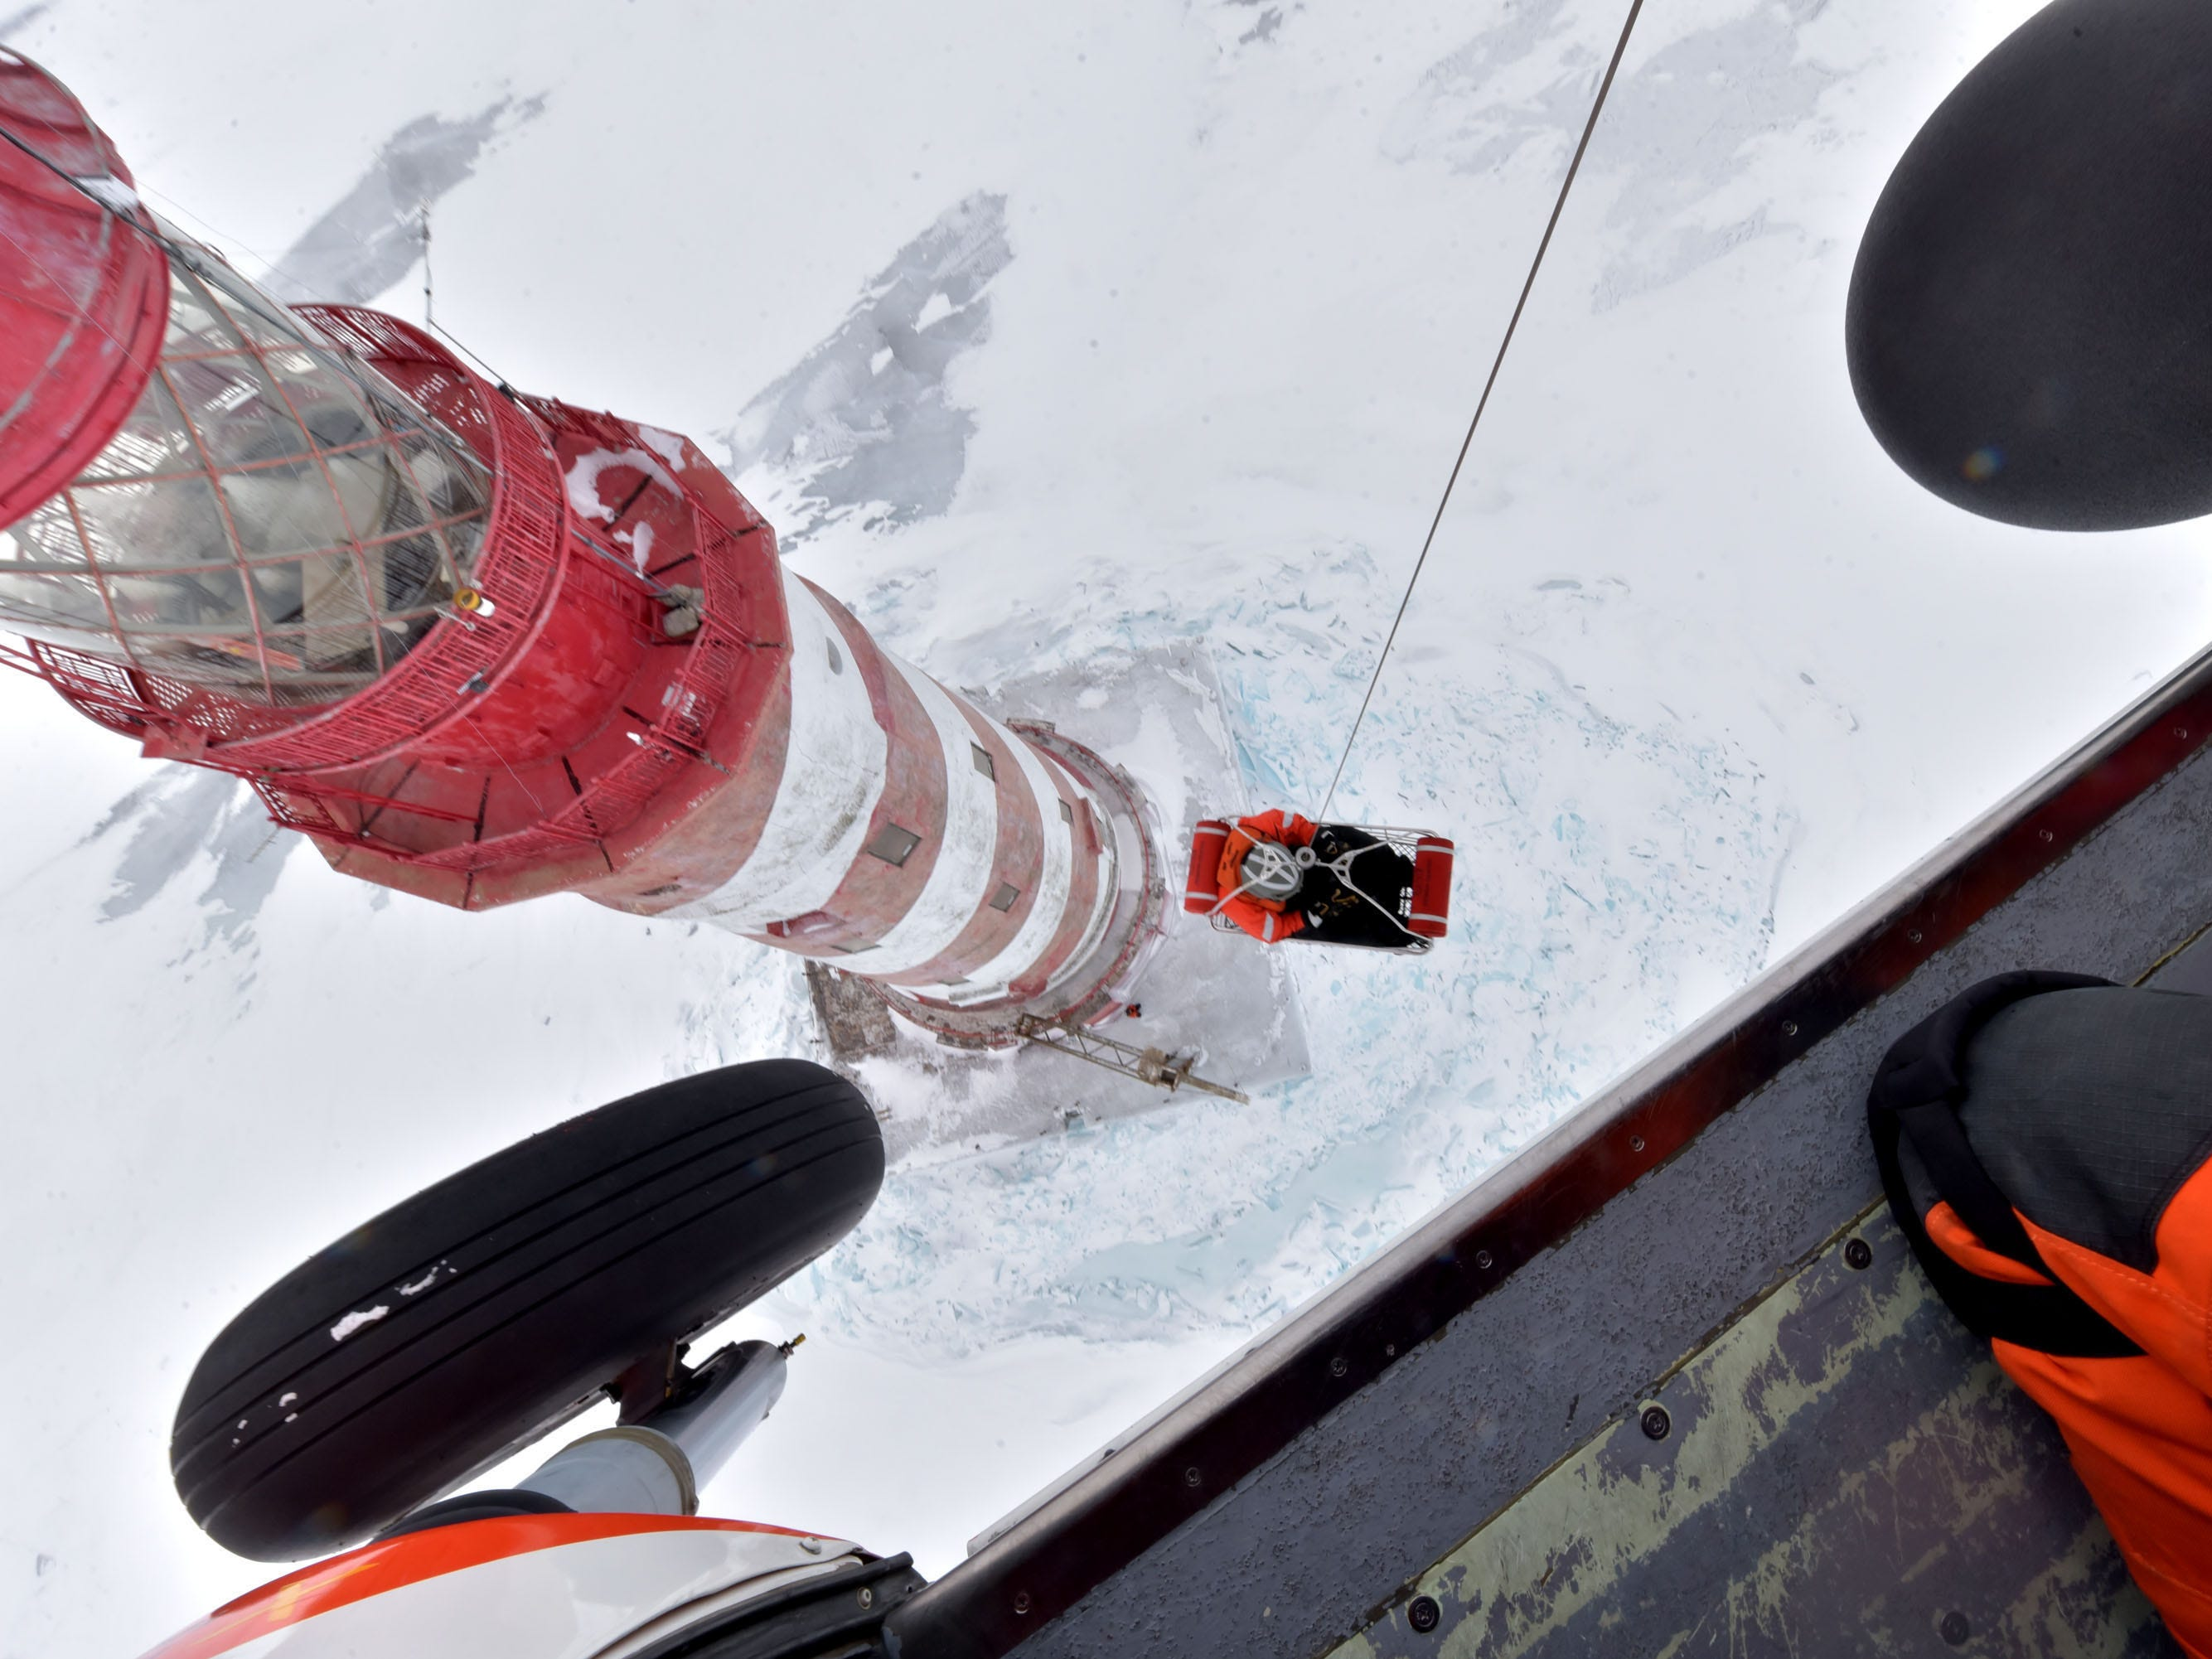 The U.S Coast Guard's Sean Roetnl is lifted from the deck of the White Shoal Lighthouse in upper Lake Michigan Thursday, Feb. 14, 2019 after performing maintenance and repair work.